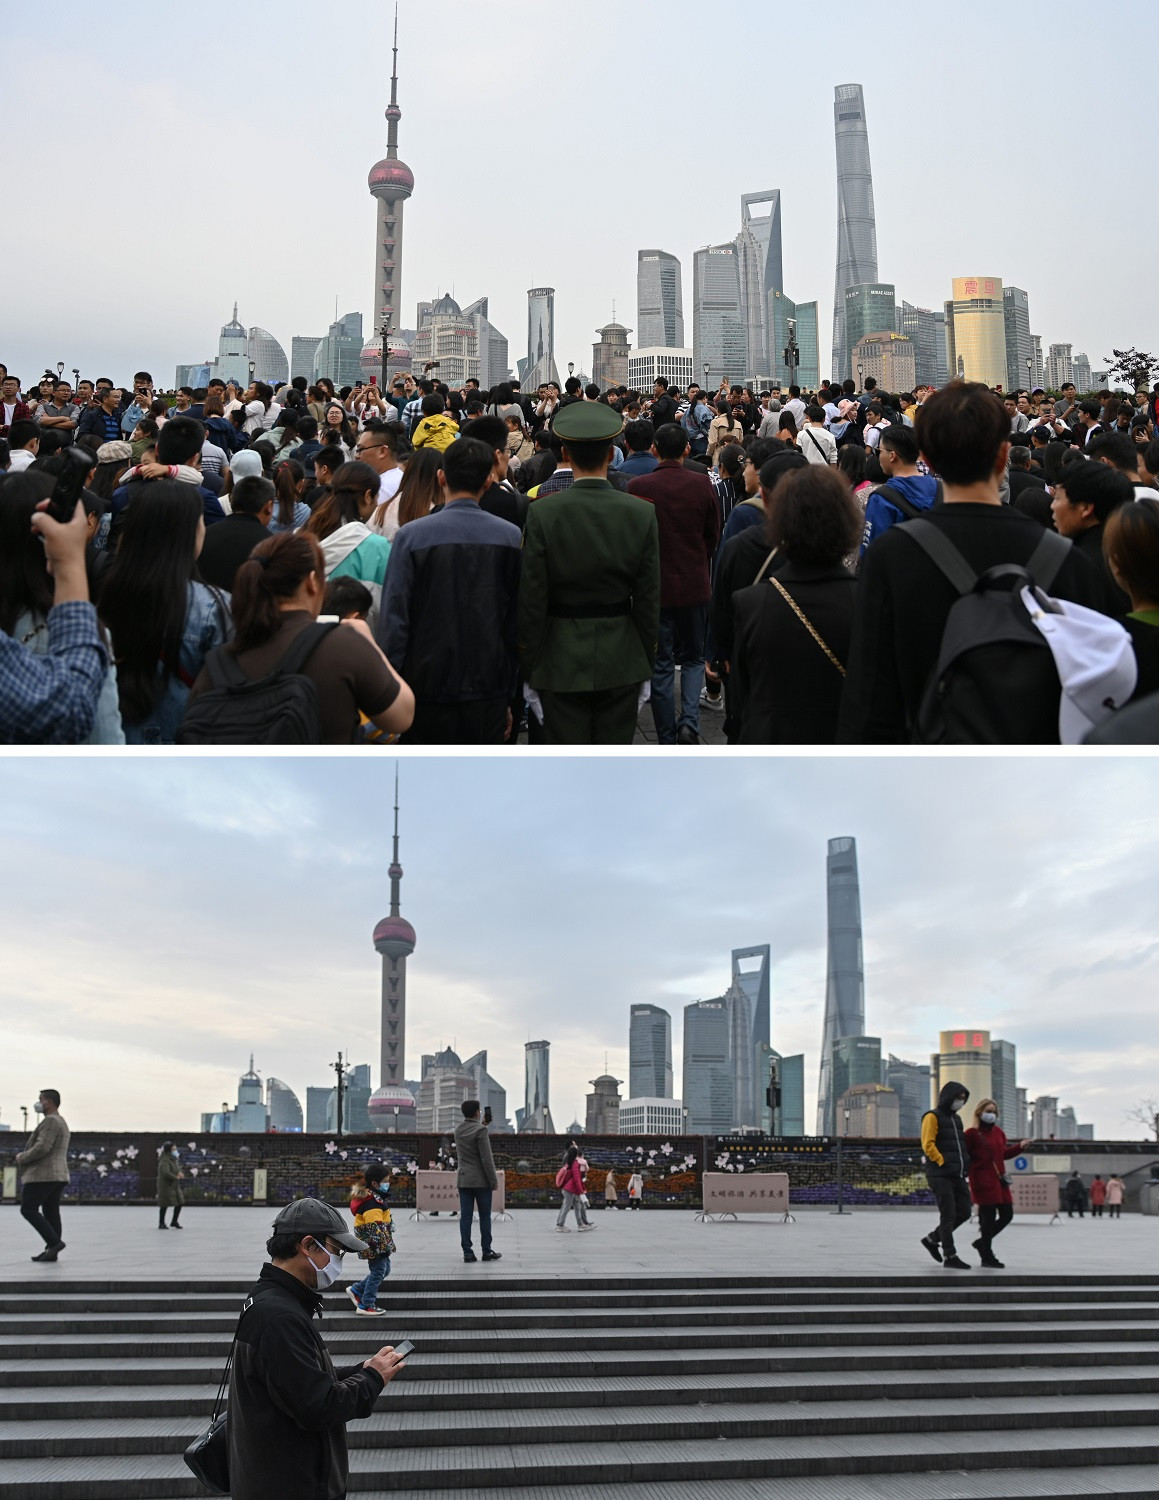 This combination photo created on March 8, 2020 shows people visiting the promenade on the Bund along the Huangpu River during the May Day holiday in Shanghai on May 1, 2019 (top) and people wearing facemasks, amid concerns of the COVID-19 novel coronavirus, along the Bund in Shanghai on March 8, 2020.